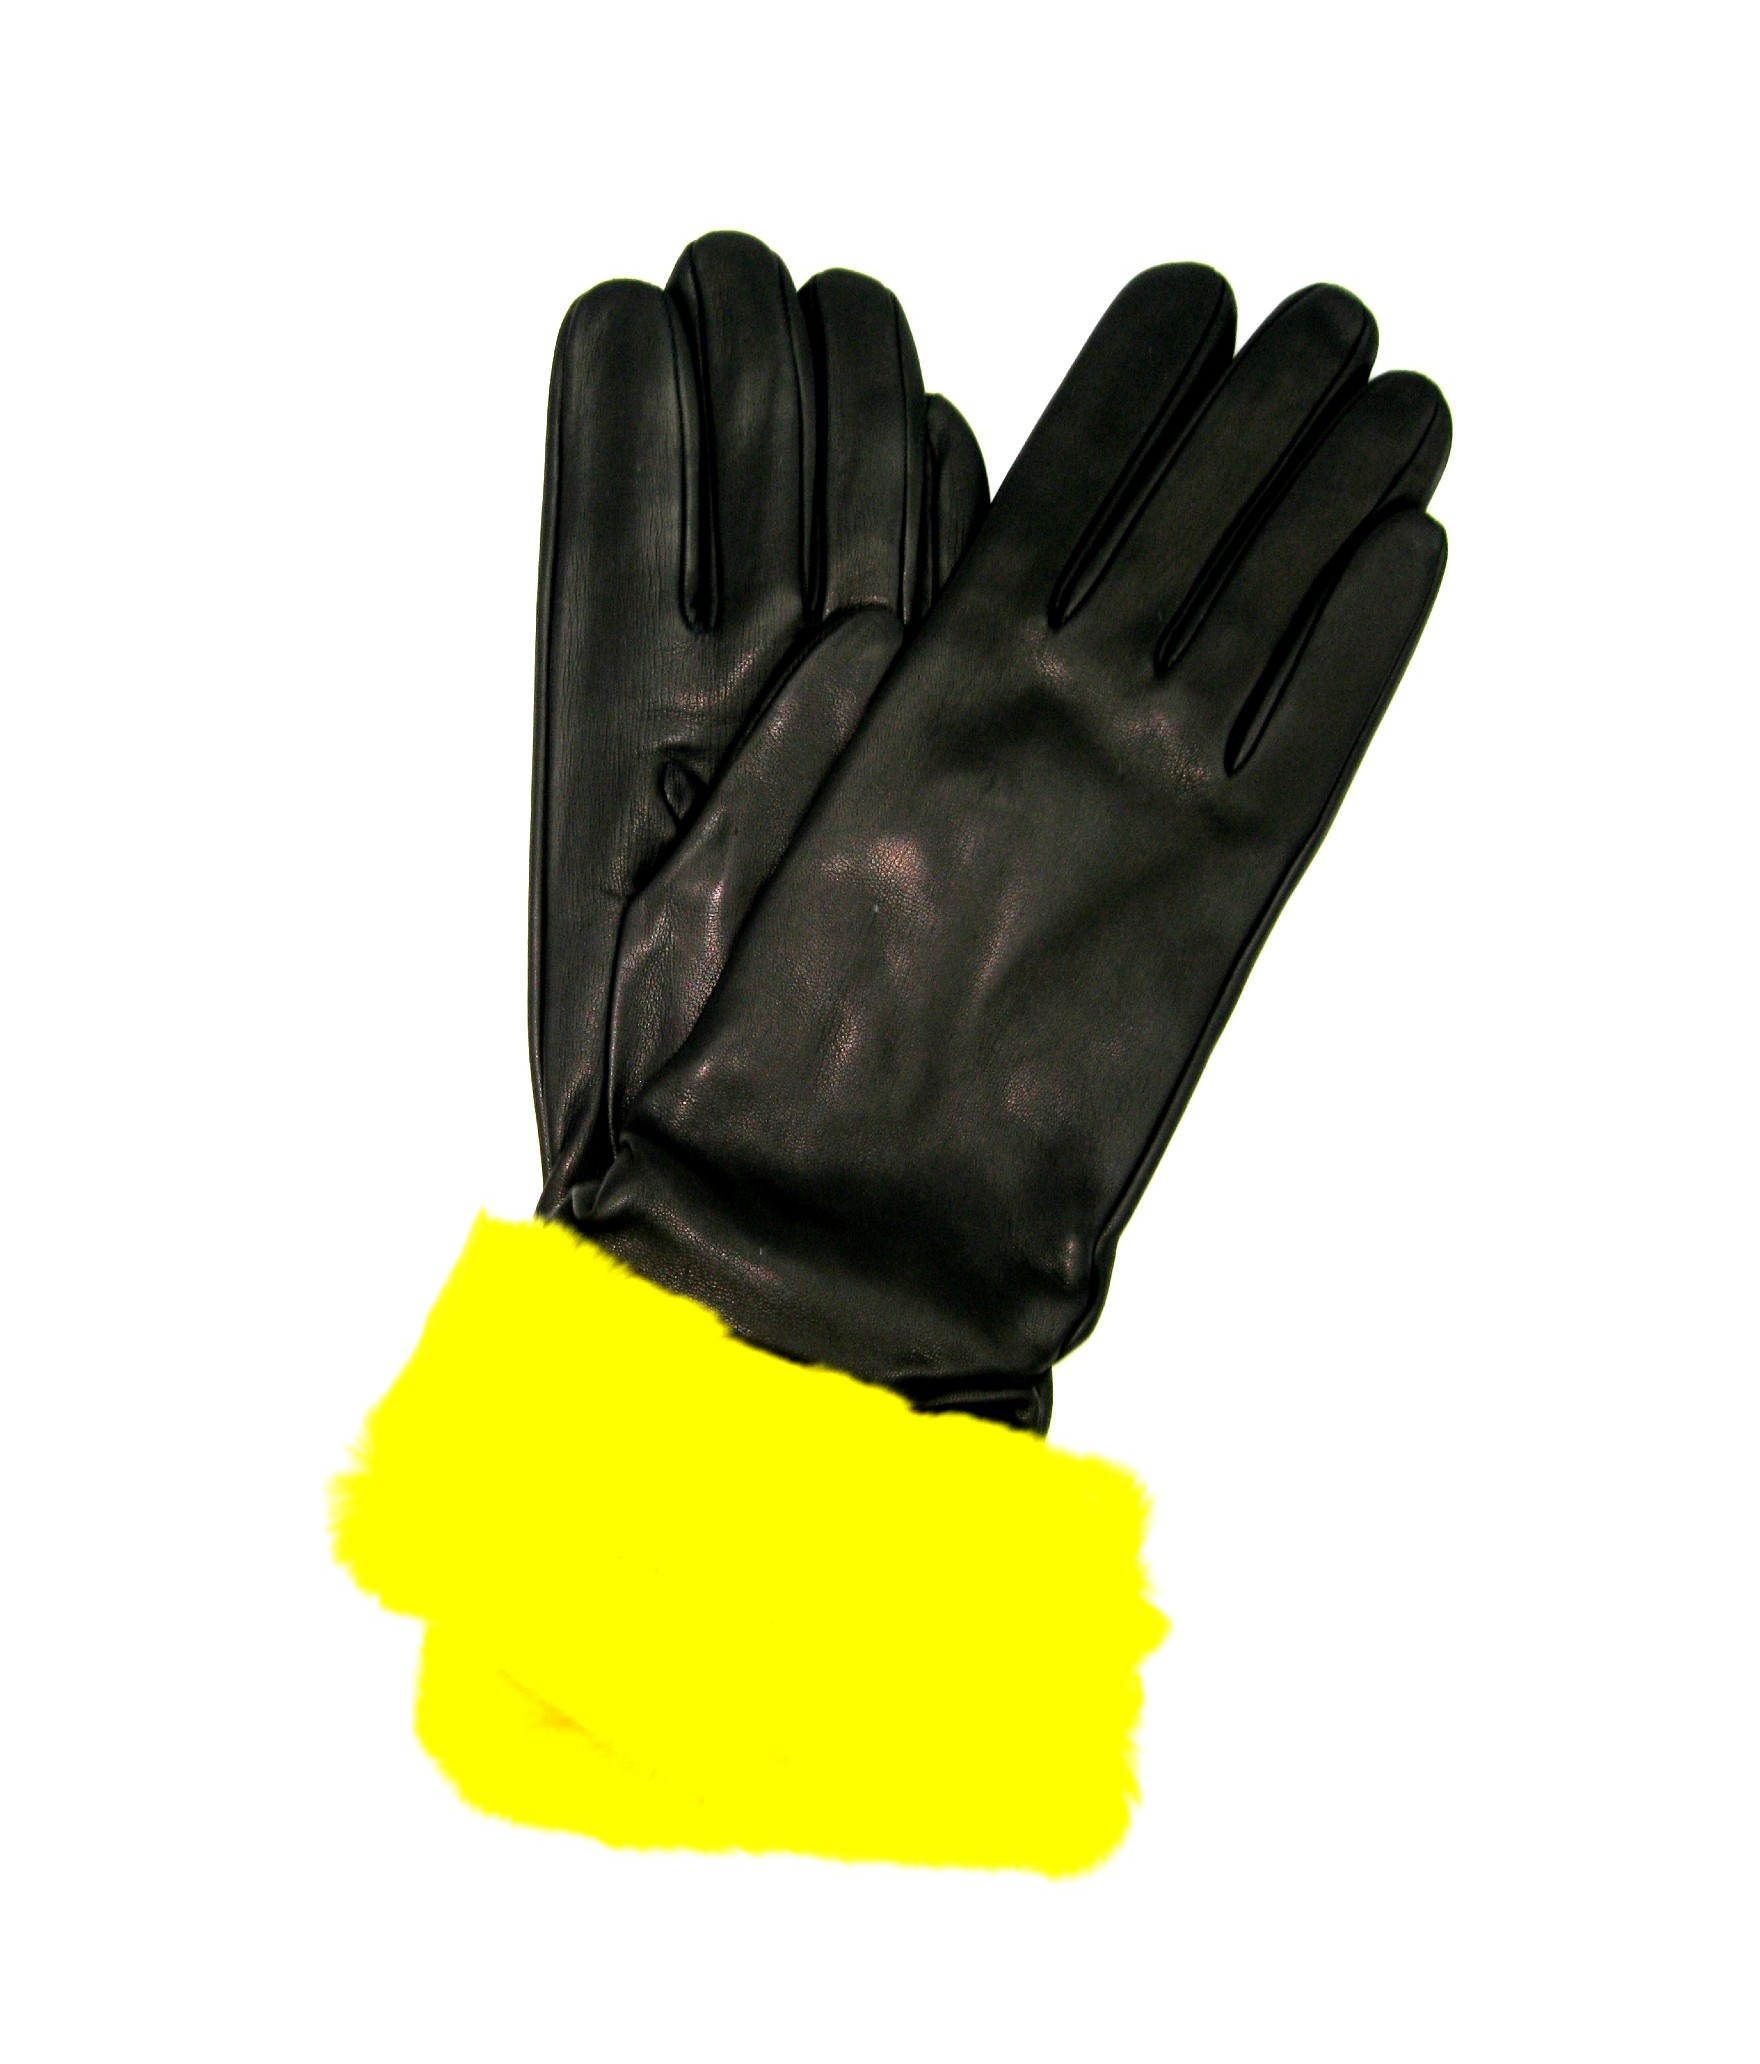 Nappa gloves cashmere lined 4bt with Rex fur Black/Yellow